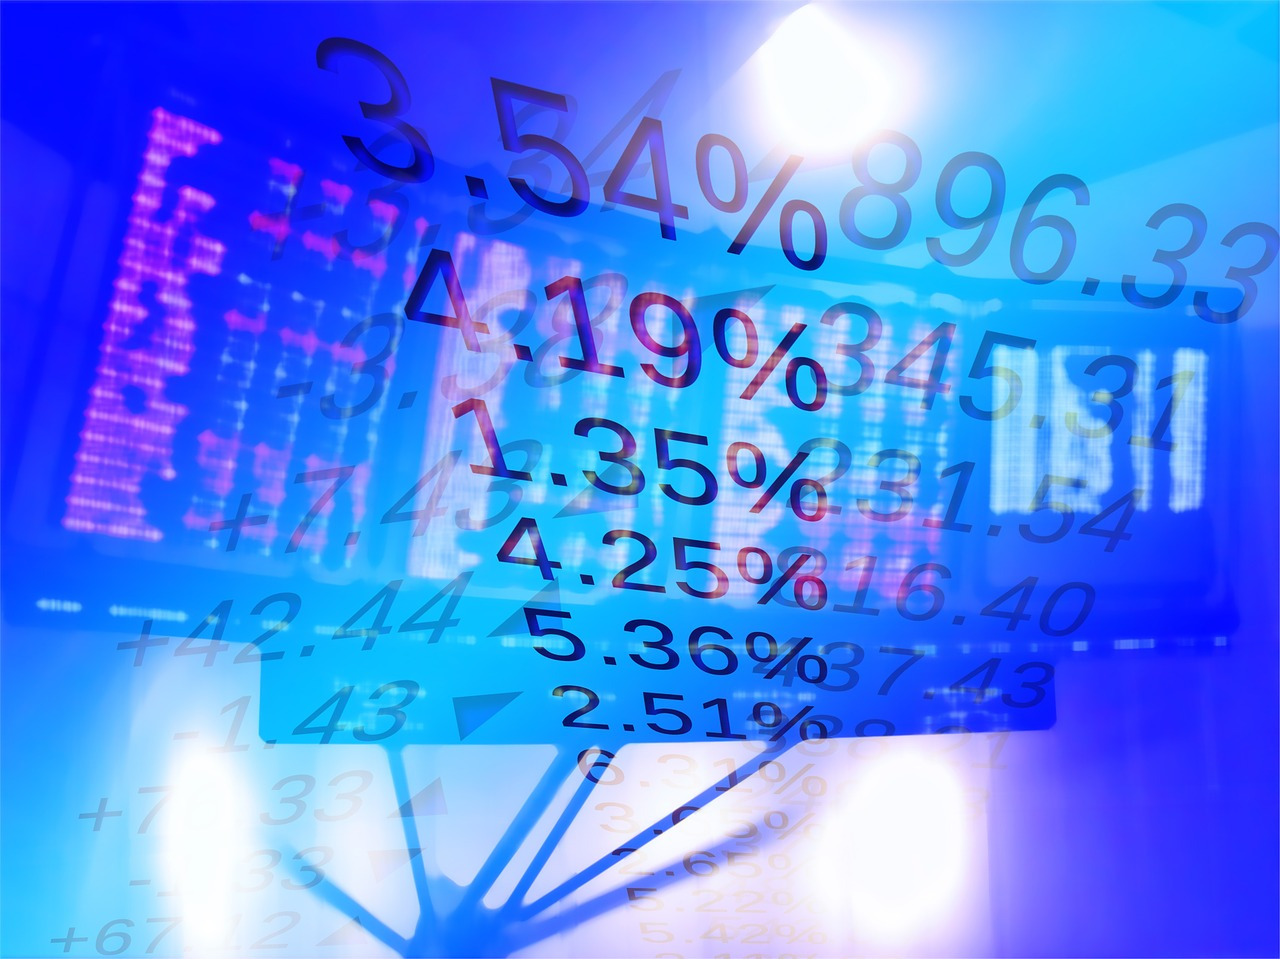 Online stock broker fees compared